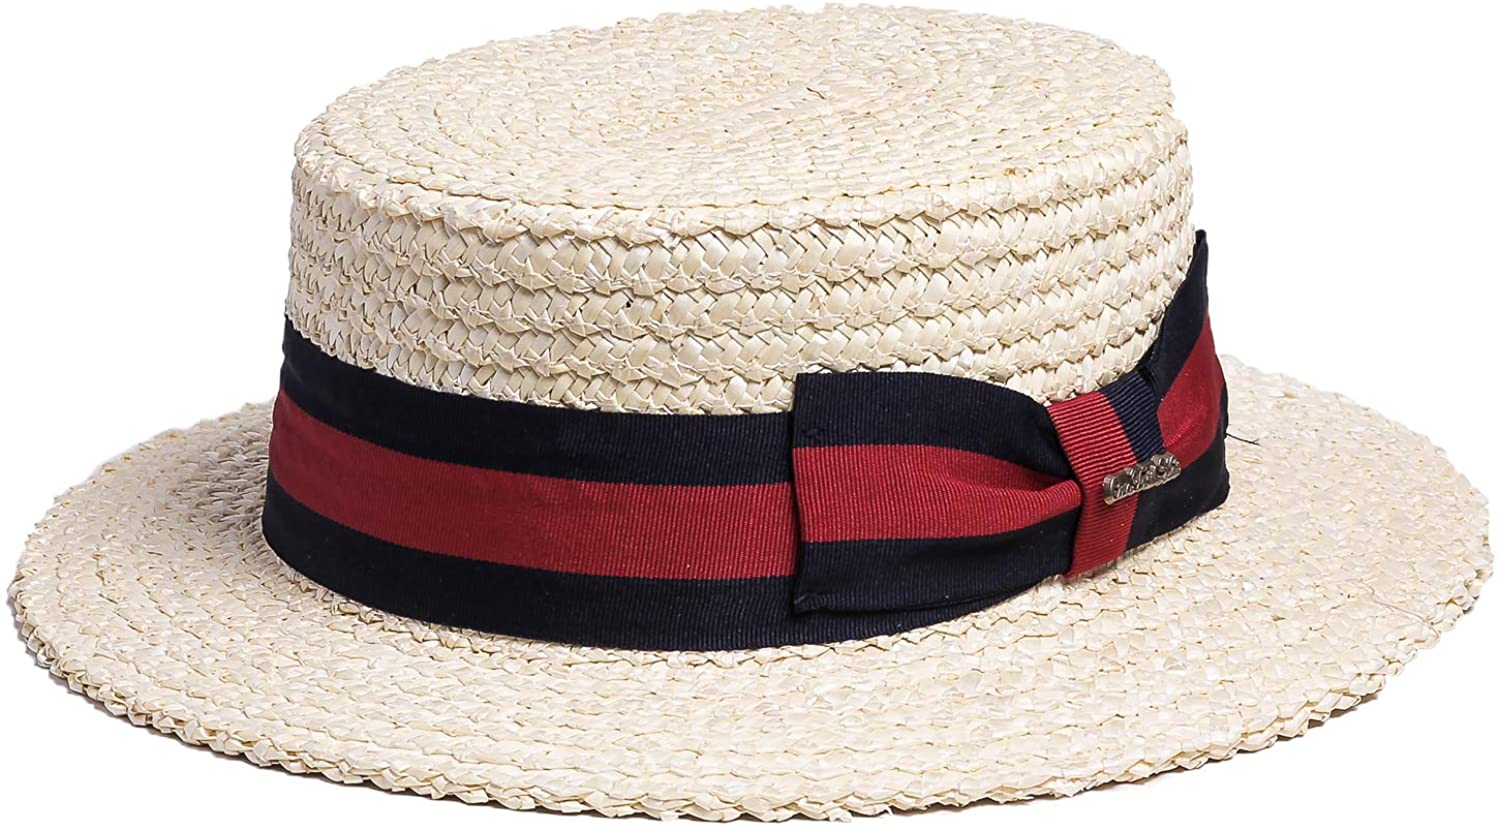 1920s Men's Hats – 8 Popular Styles Bellmora Mens Classic Straw Braid Boater Hat $49.99 AT vintagedancer.com